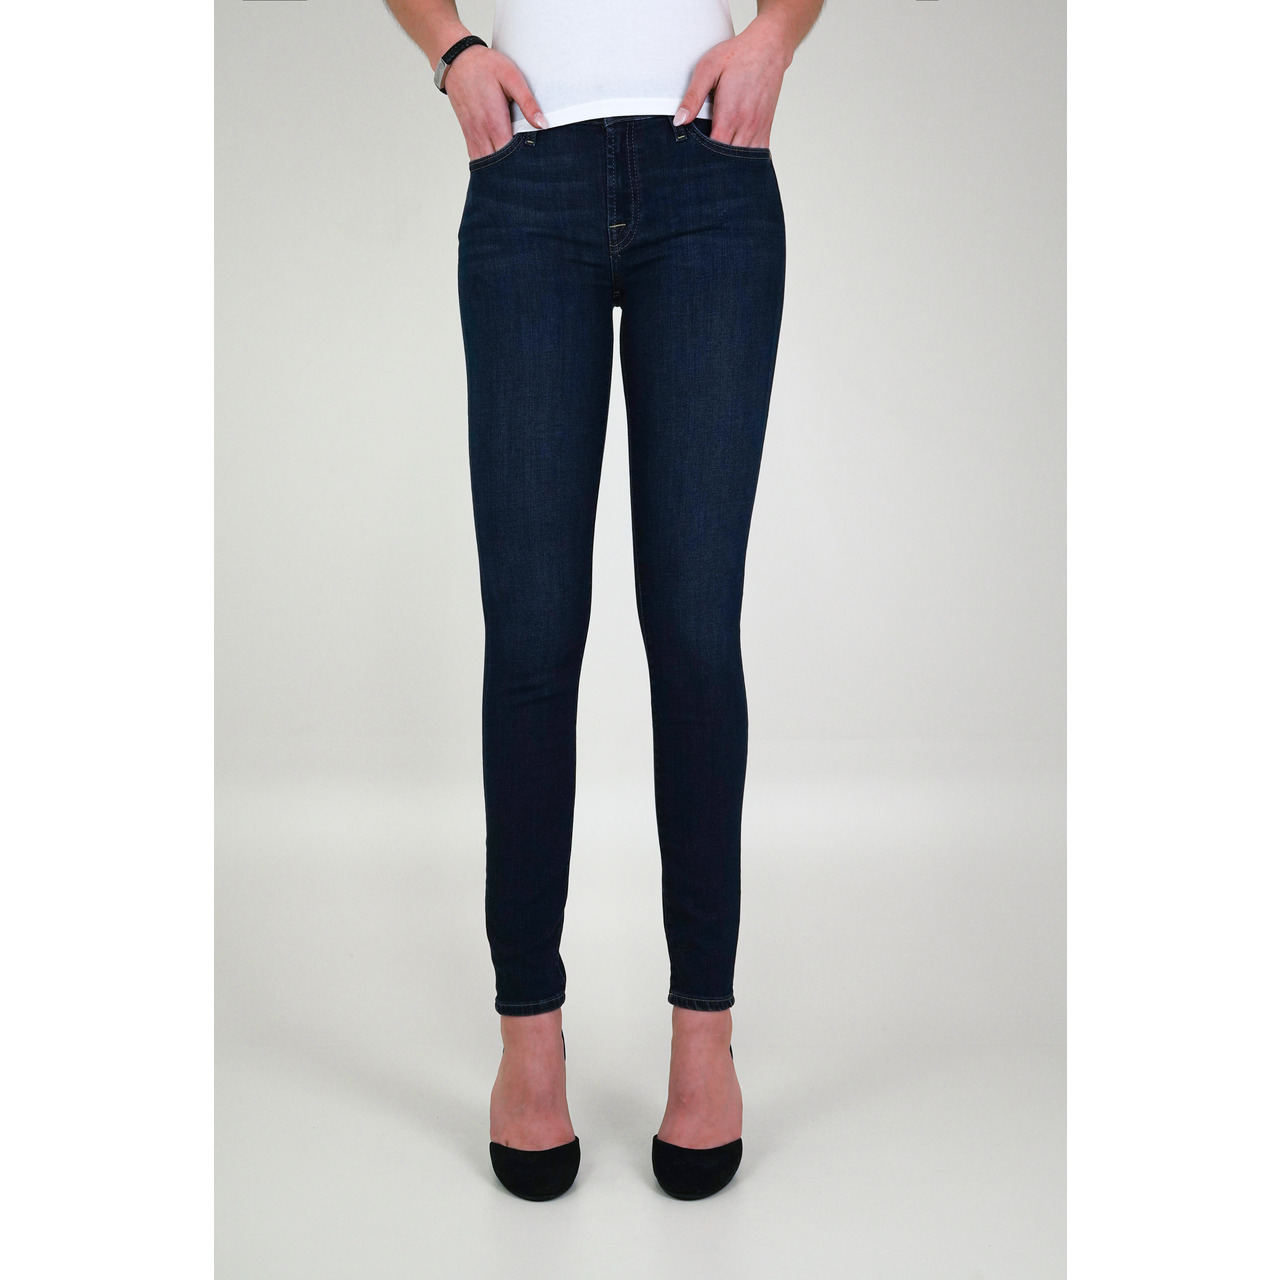 7 FOR ALL MANKIND - JEANS / THE SKINNY